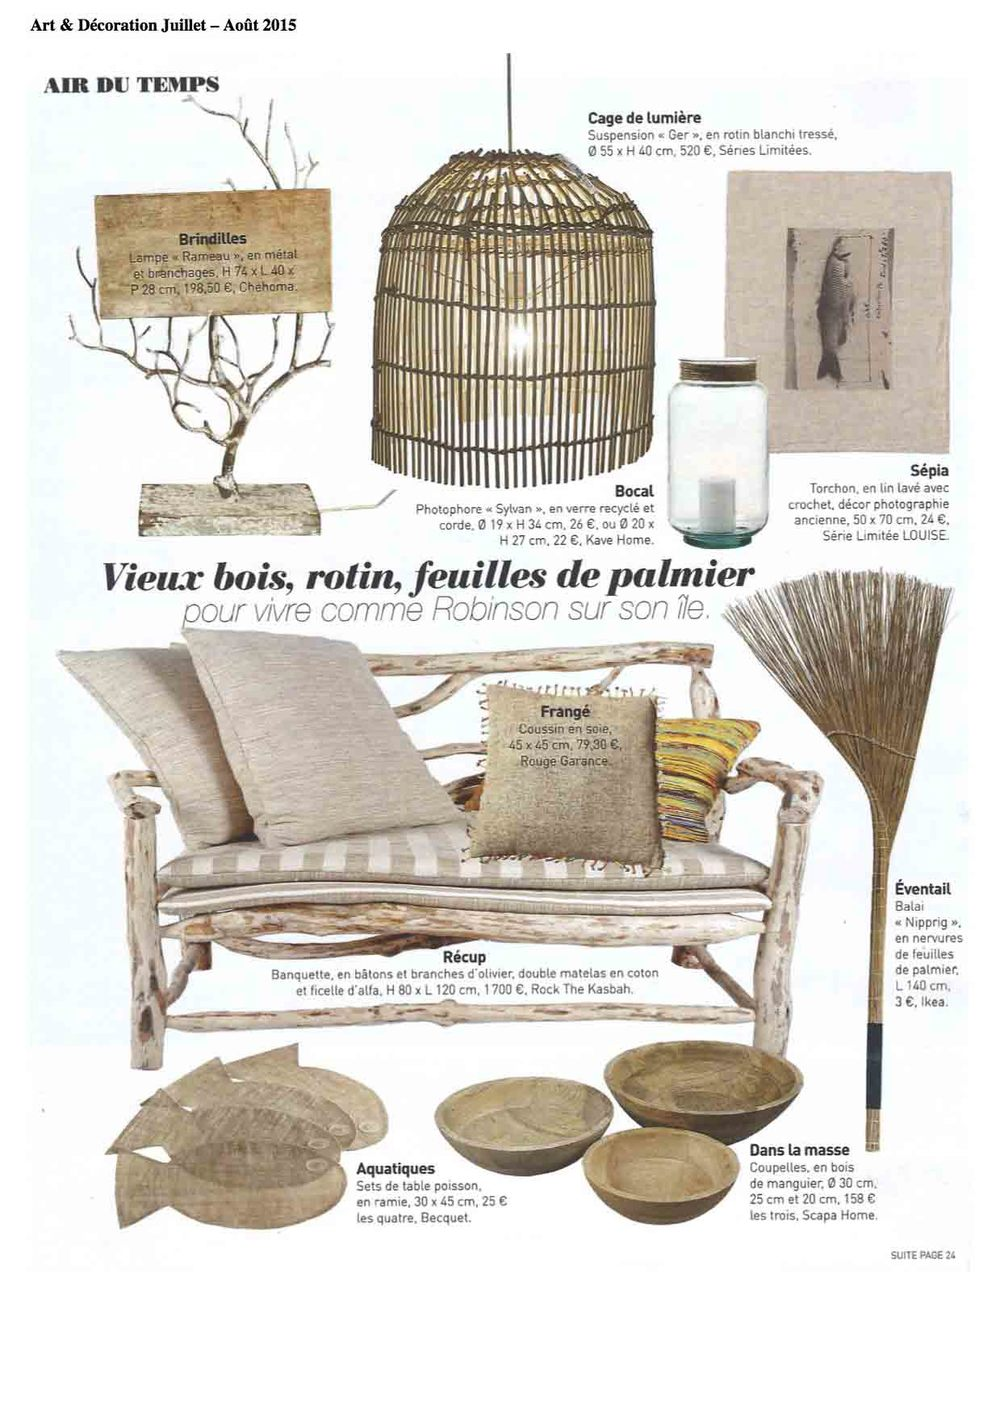 art_&_decoration_g_juillet_aout-2015-2-web.jpg